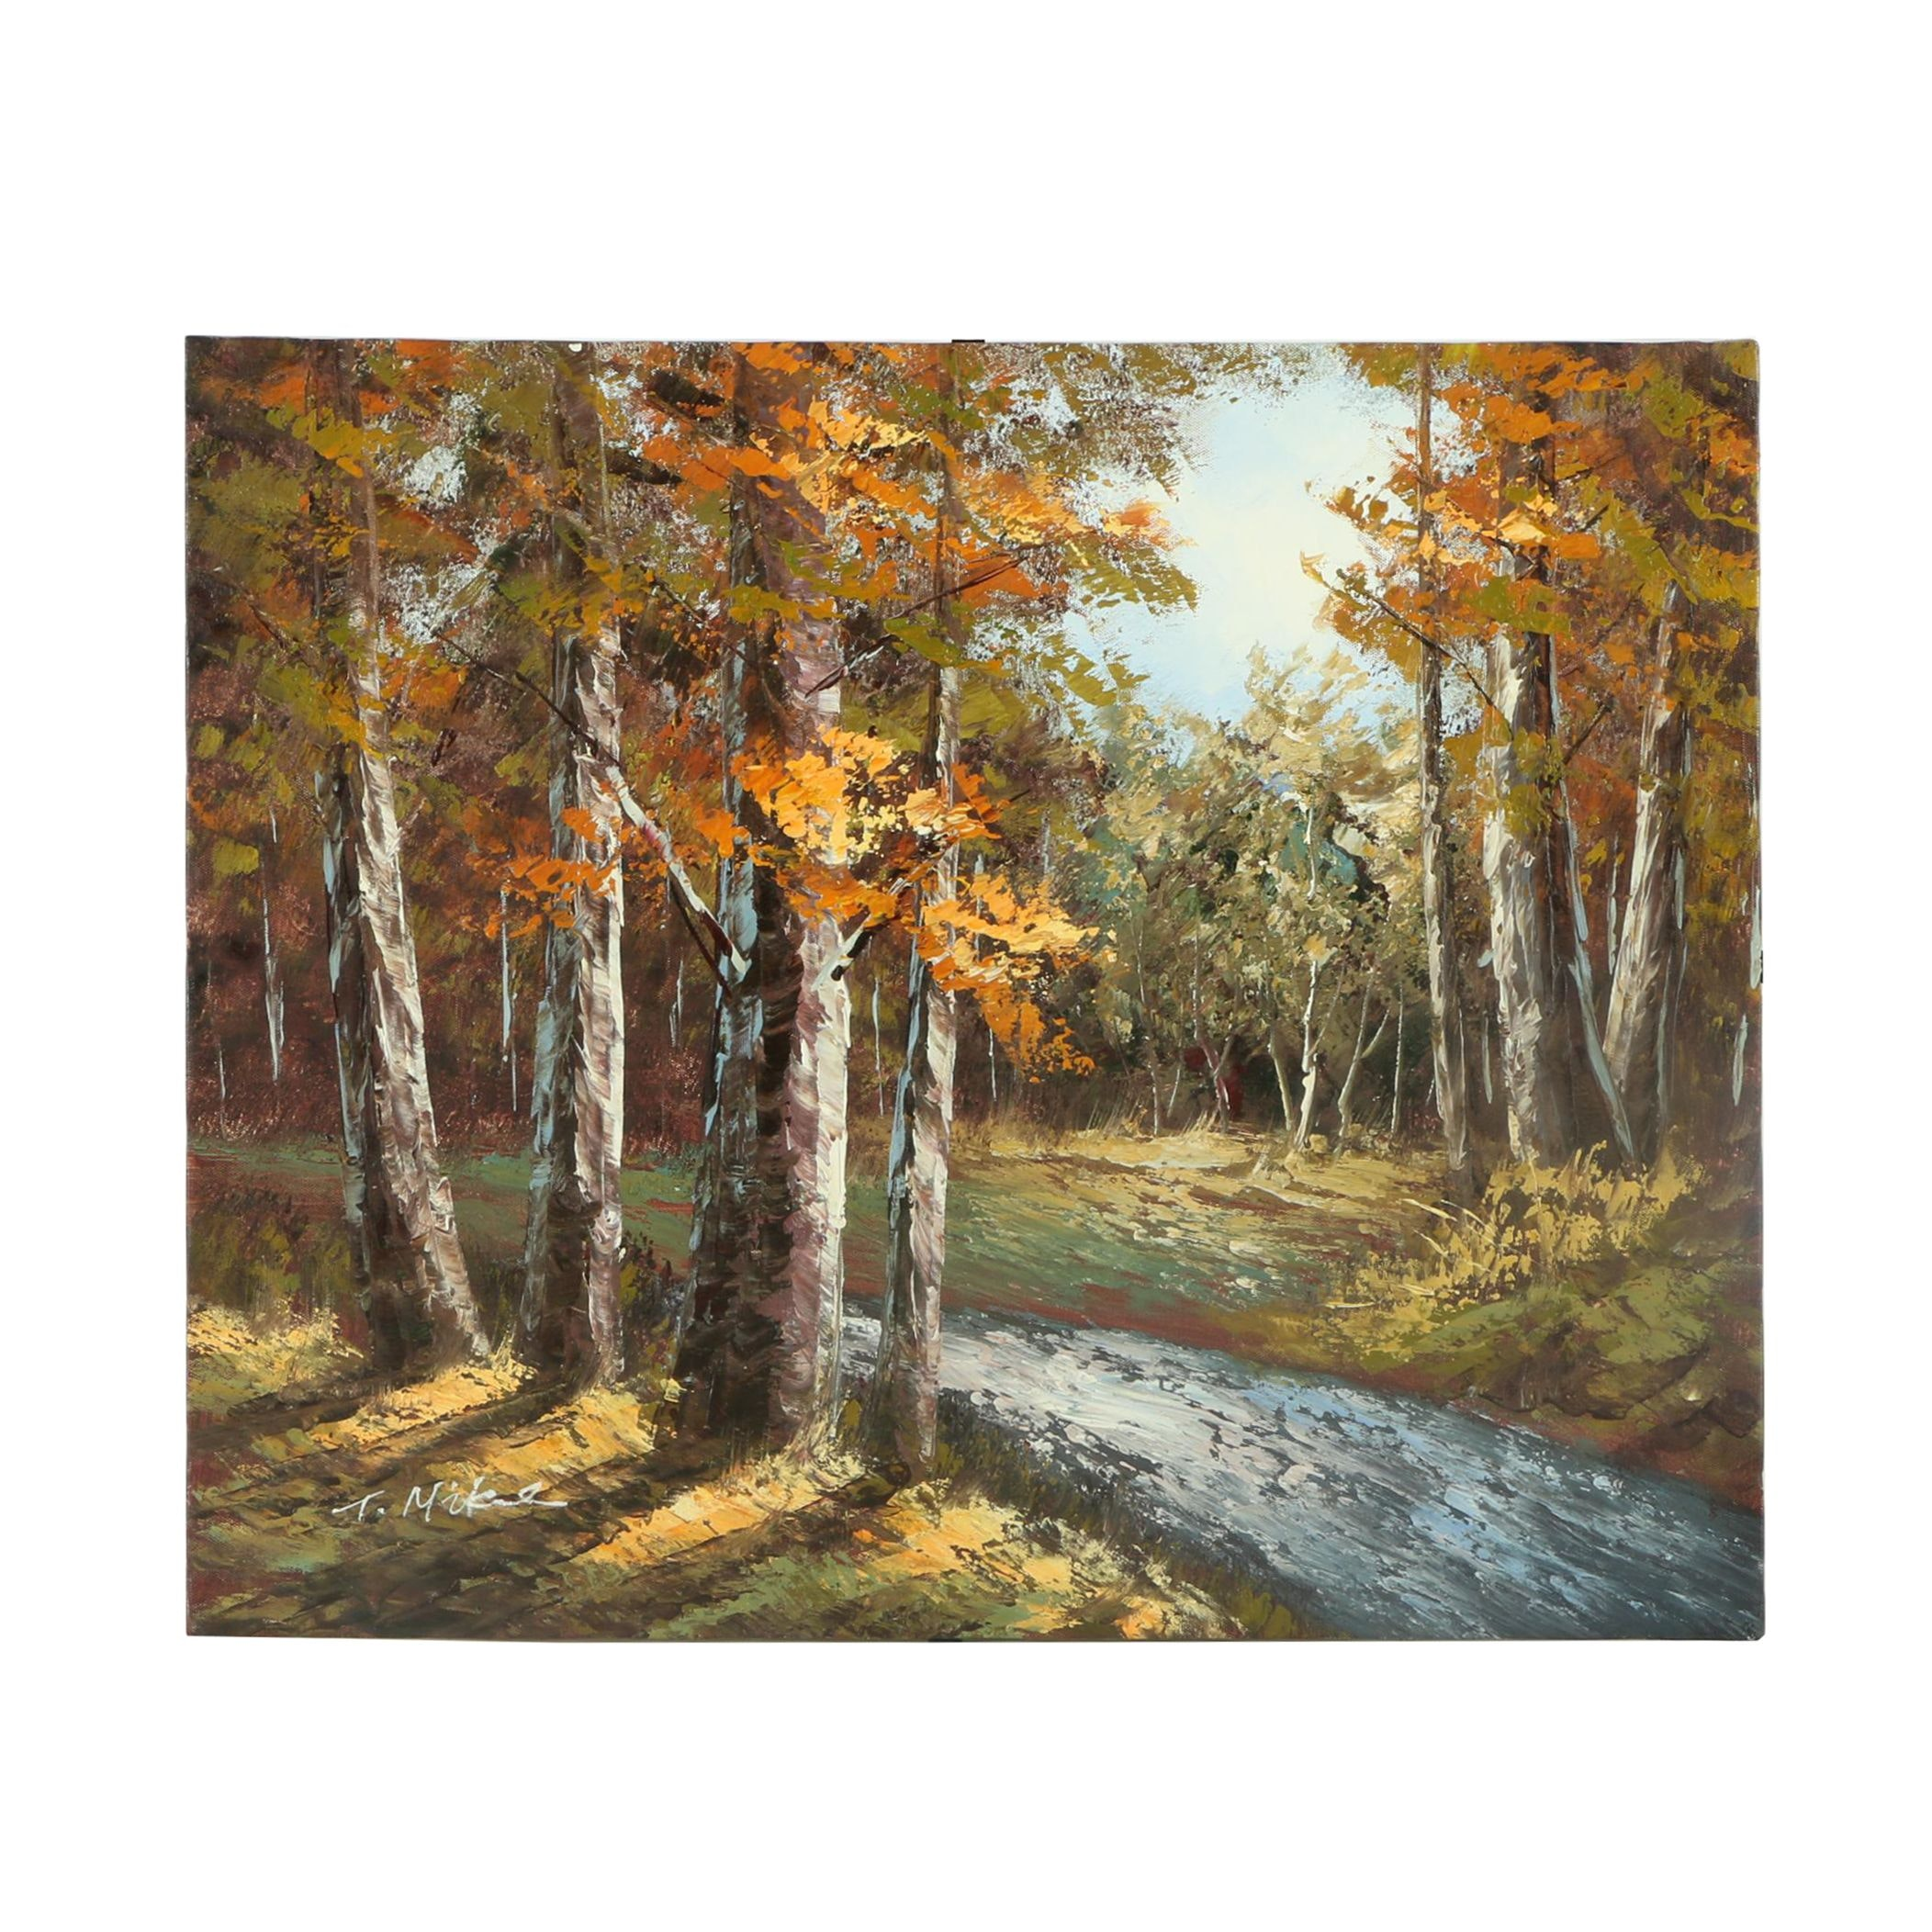 T. Mike Oil Painting on Canvas of a Wooded Landscape